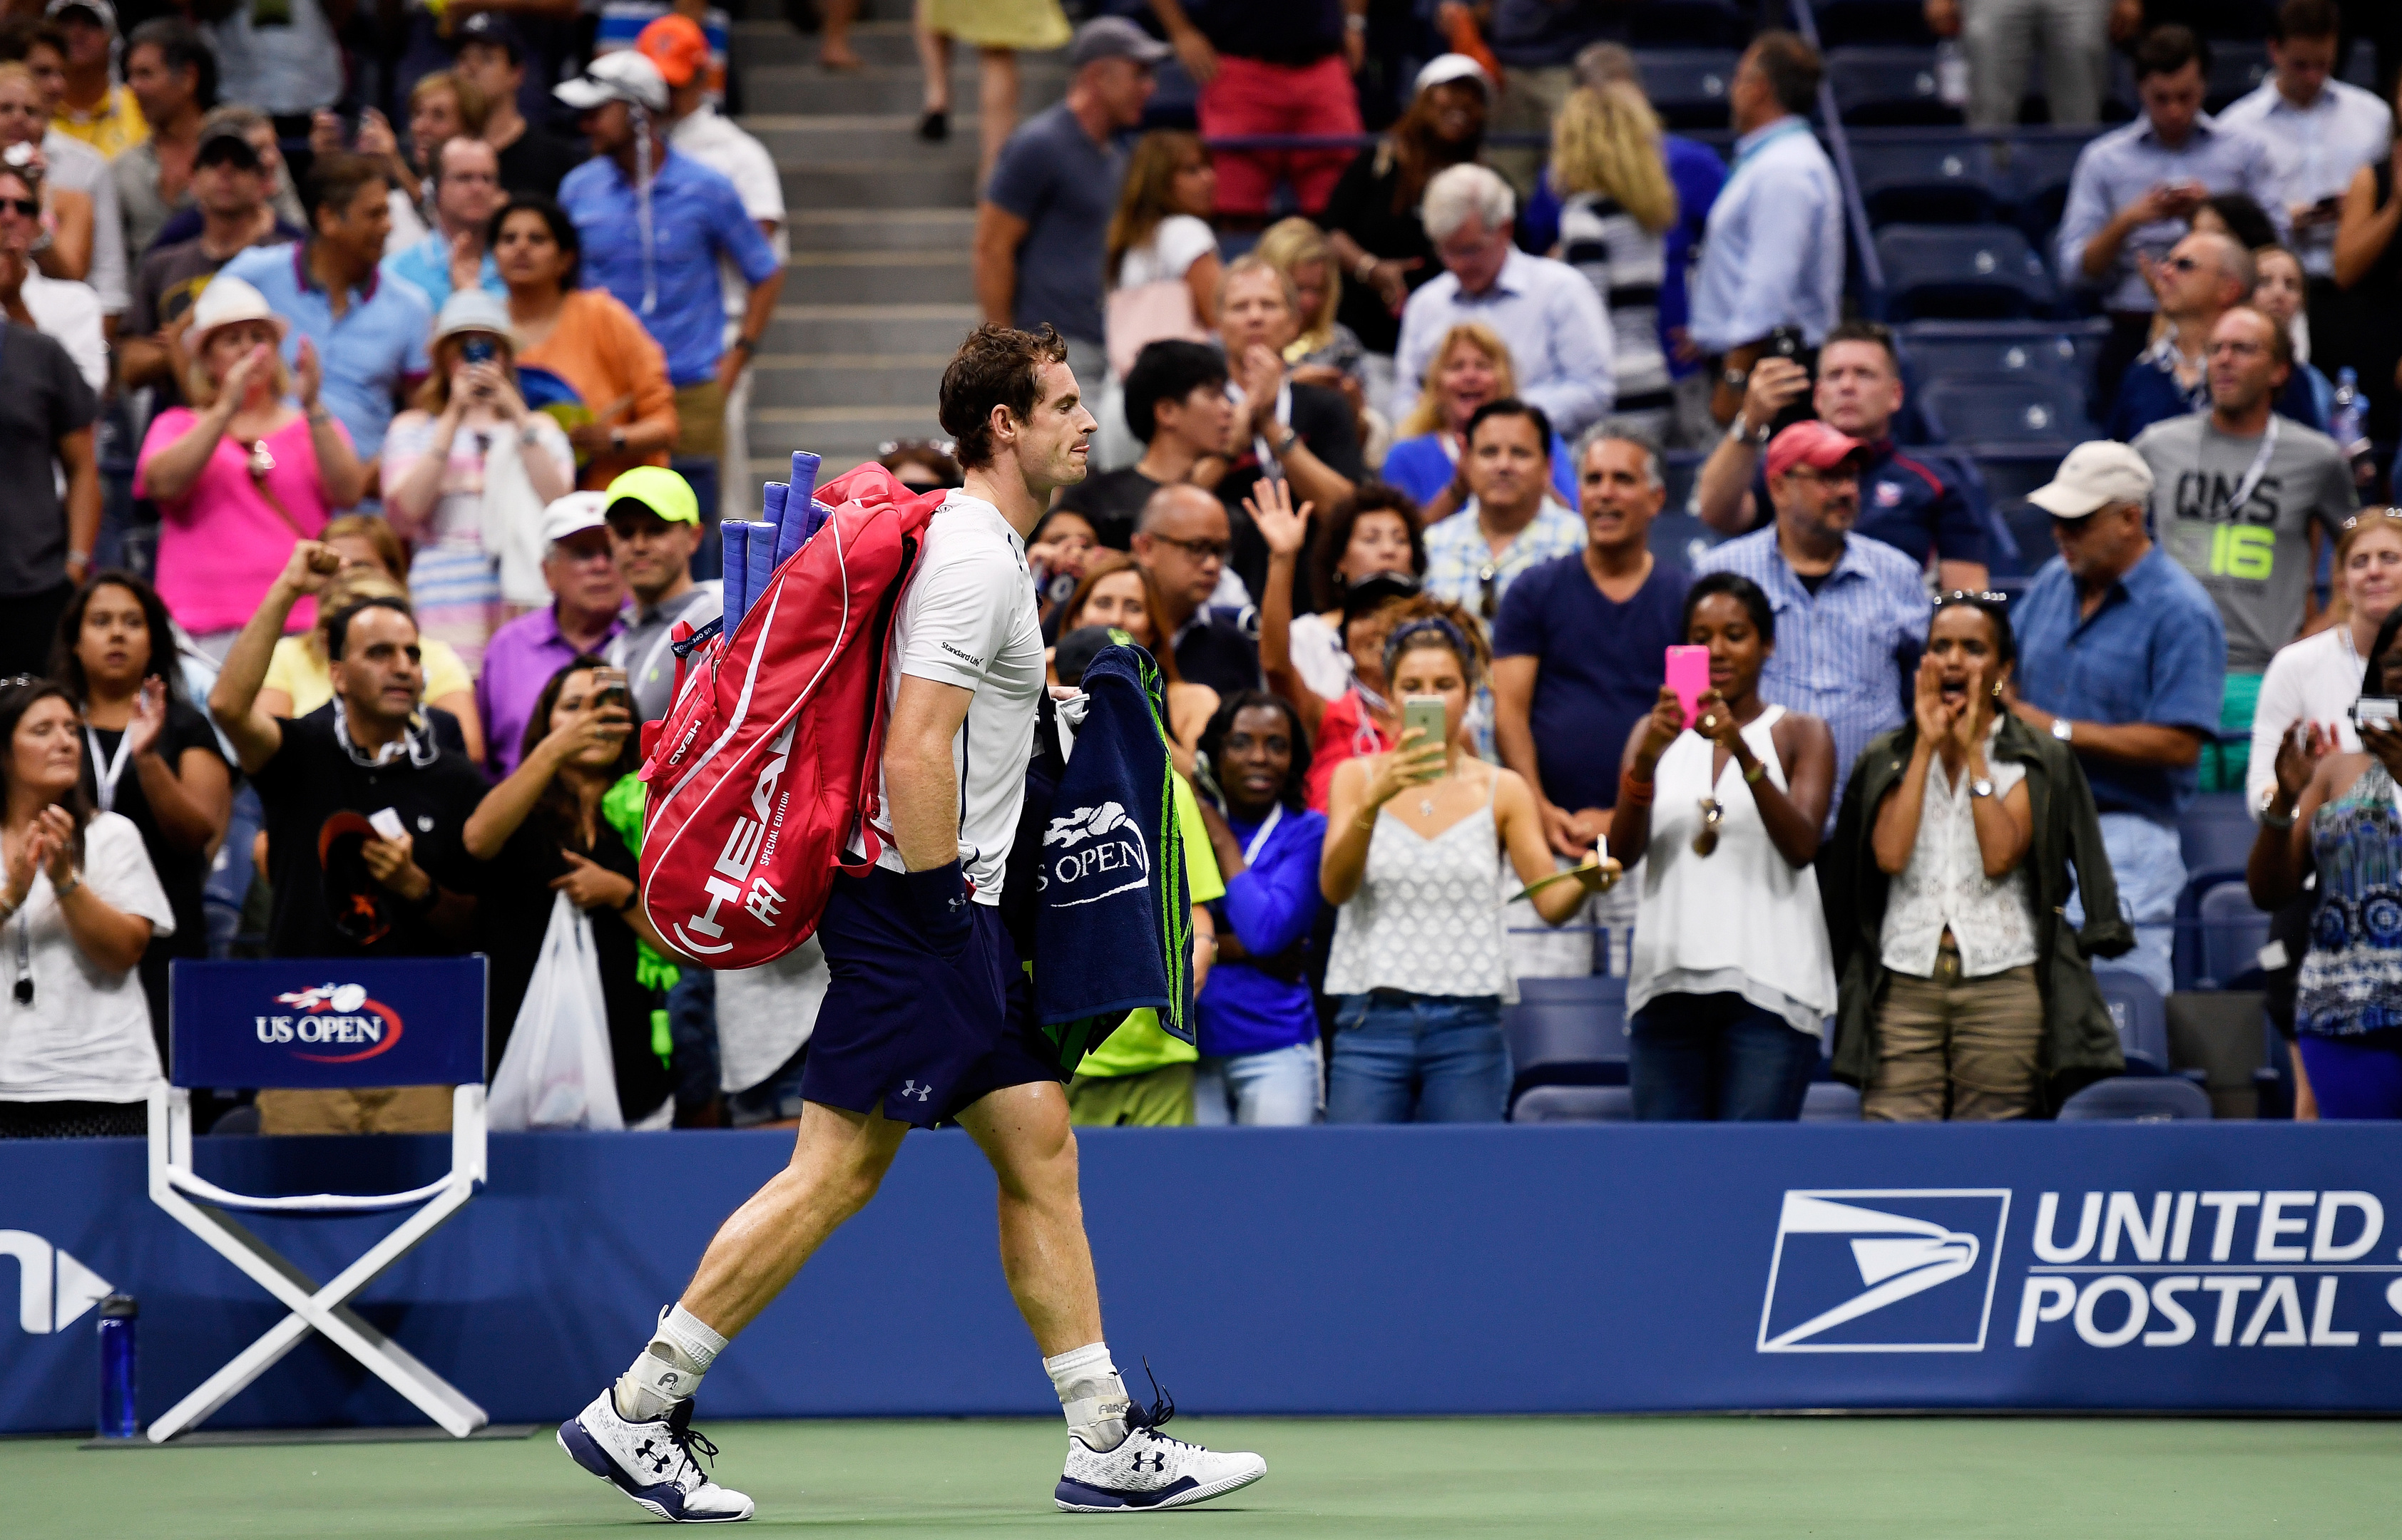 Next stop Glasgow.....A defeated Andy Murray departs the US Open.